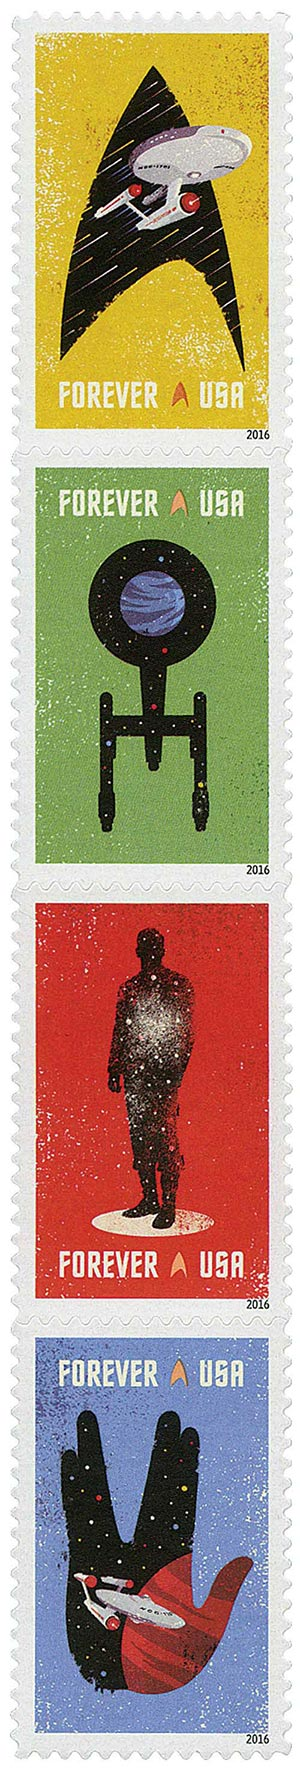 2016 First-Class Forever Stamp - Star Trek